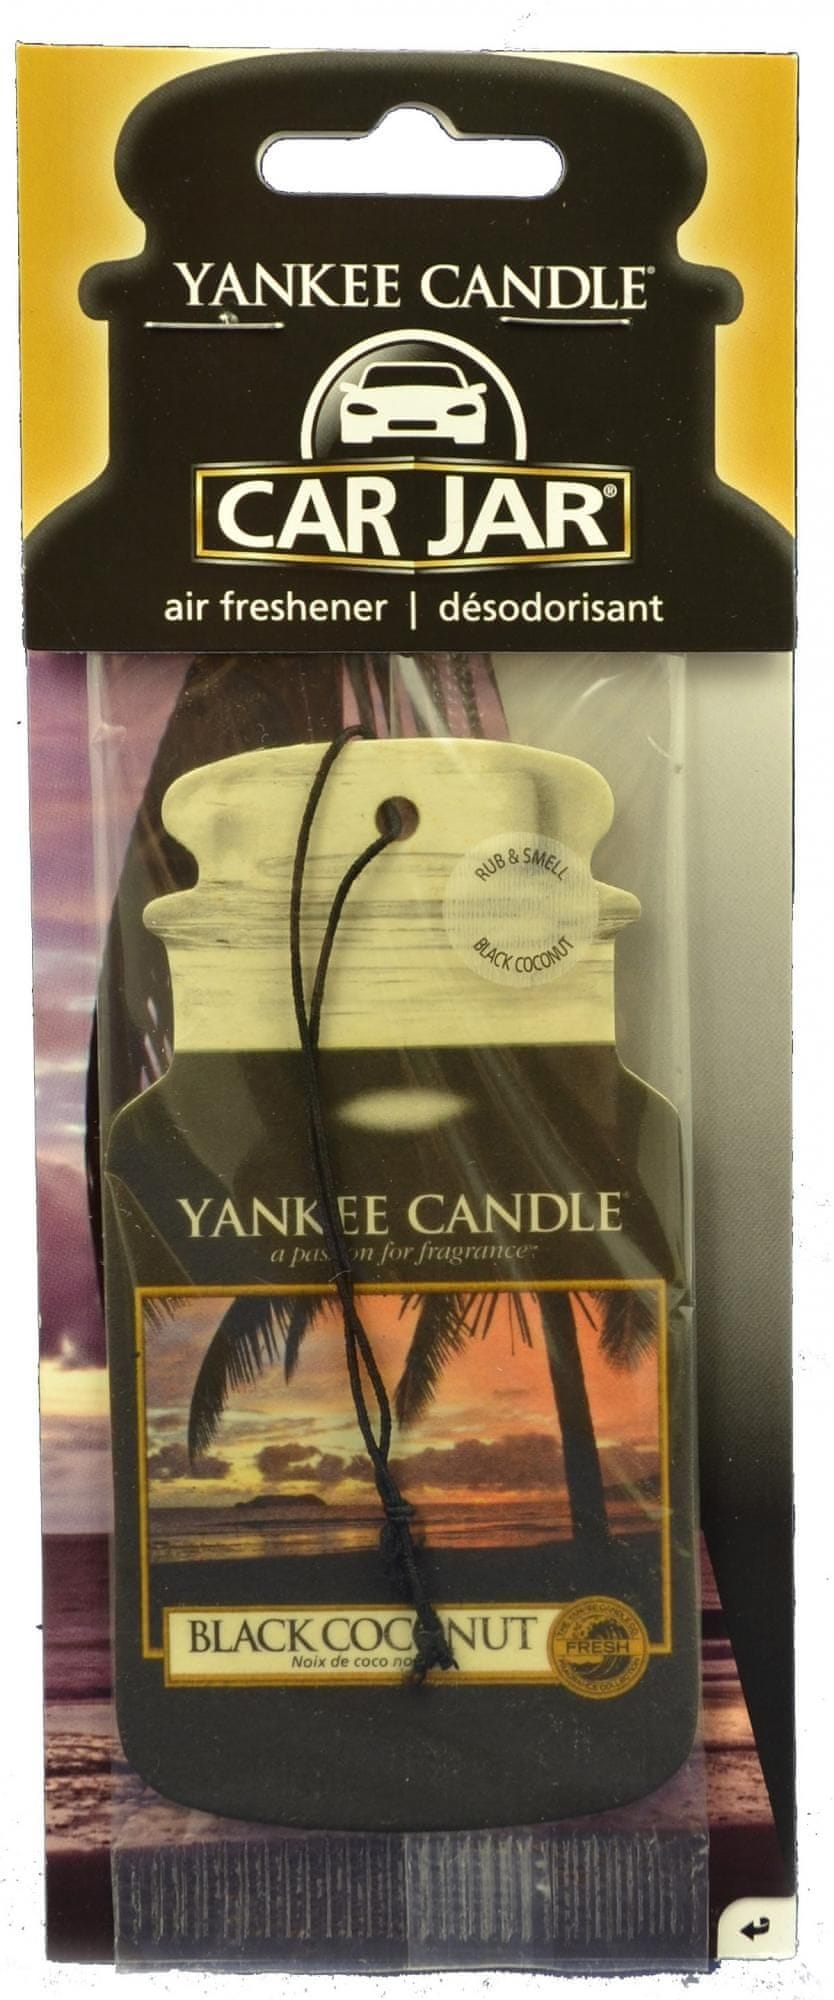 Yankee Candle Car Jar Black Coconut papírová visačka do auta 1 ks